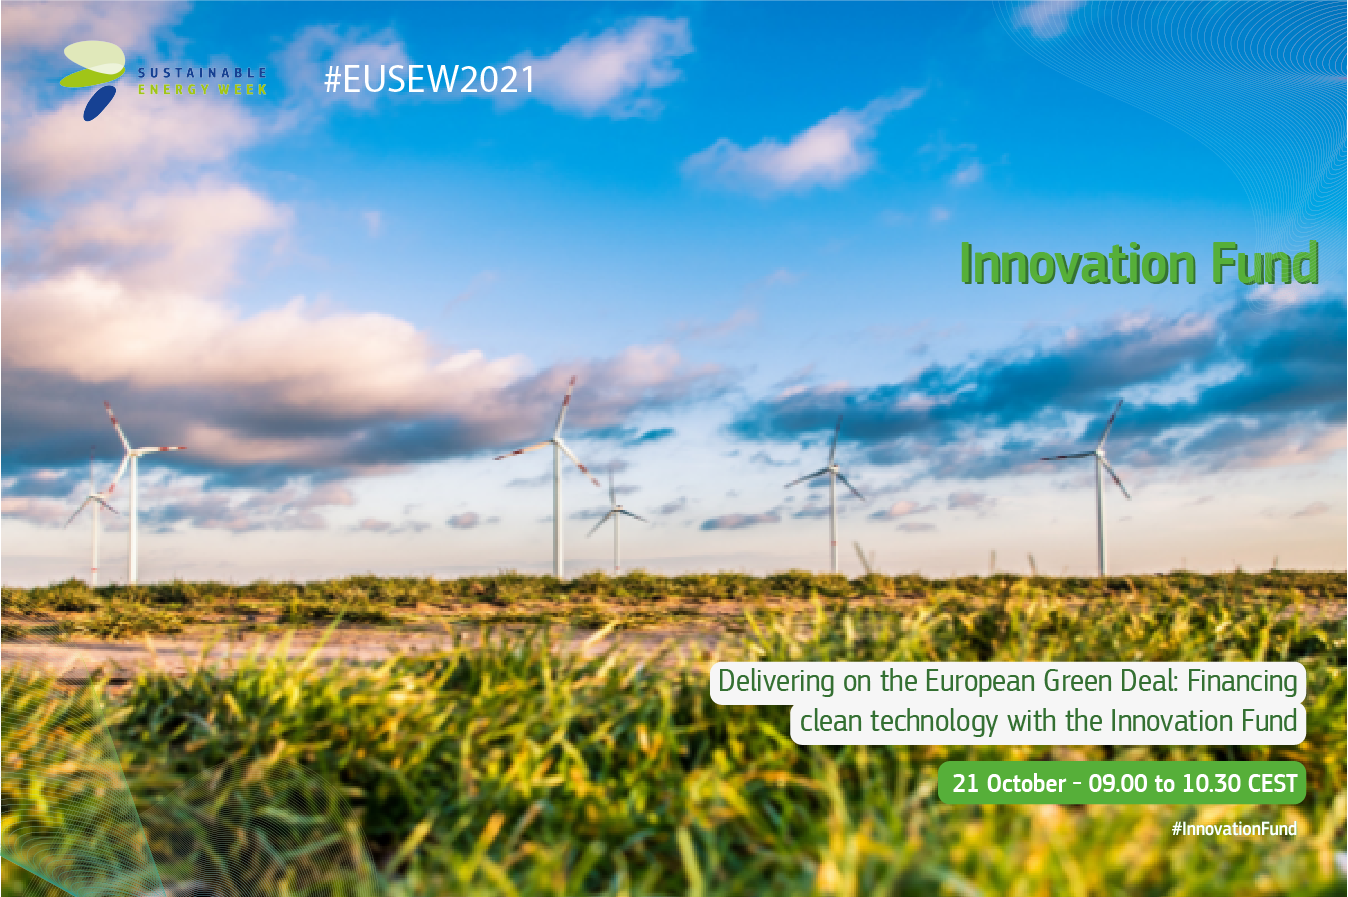 Innovation Fund at EUSEW 2021